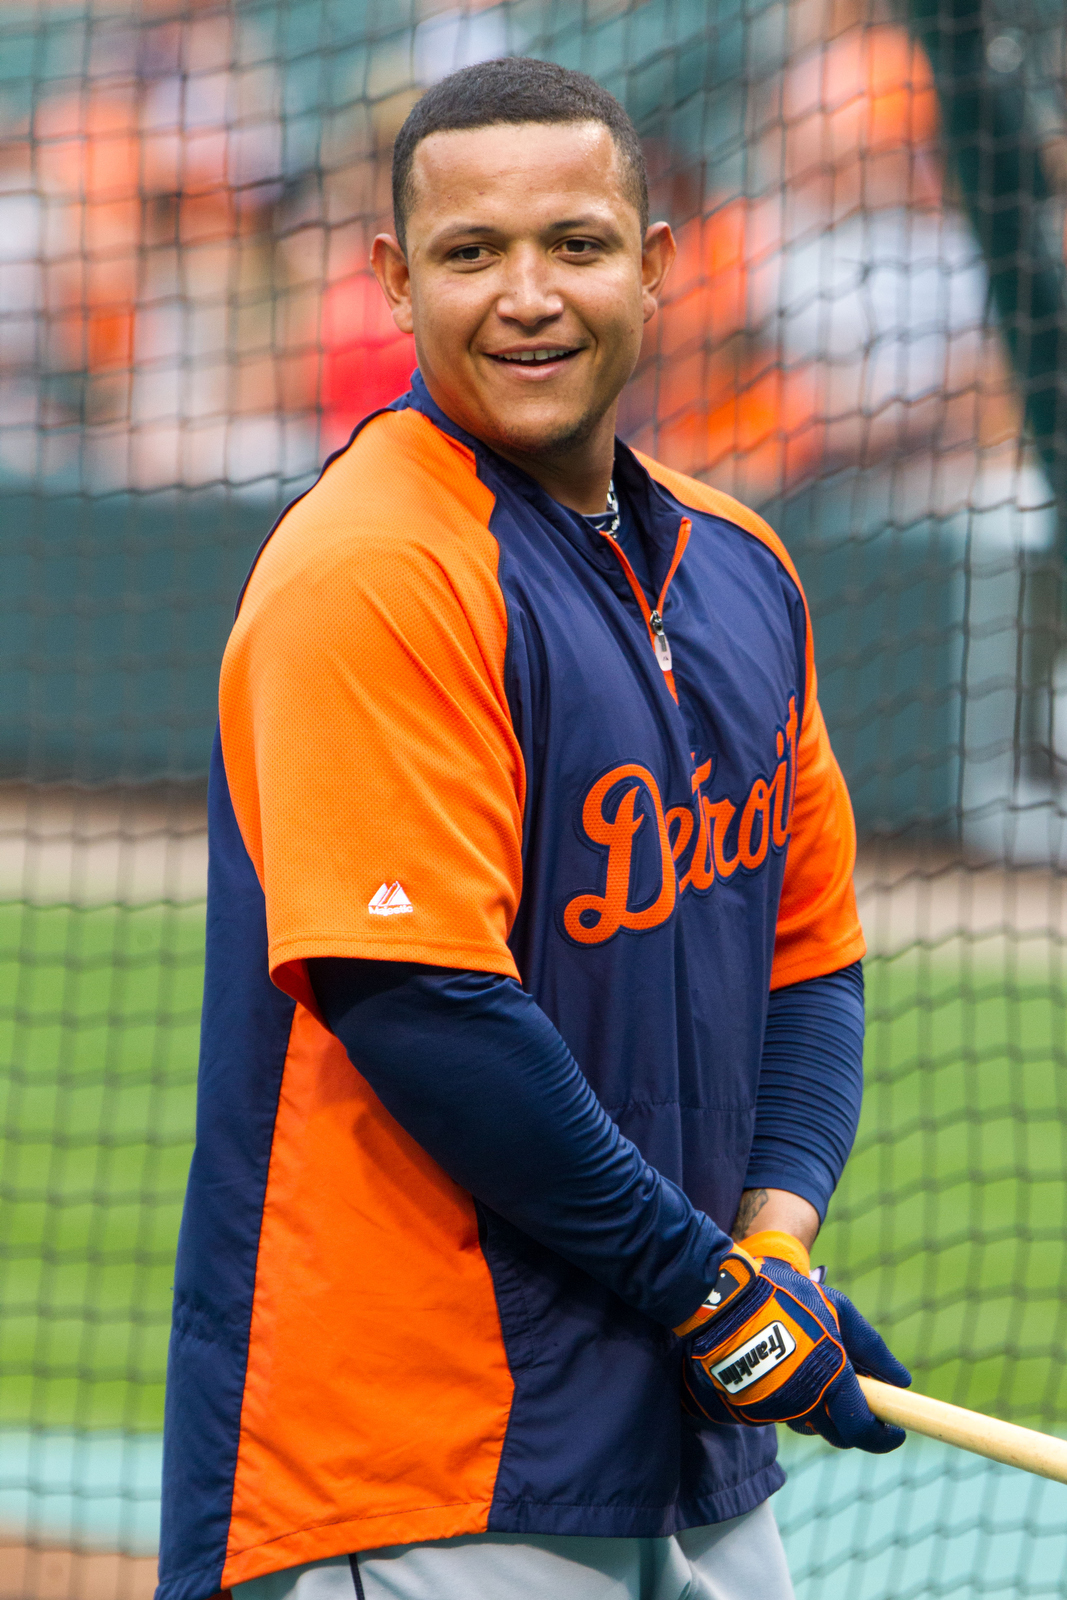 File:Miguel Cabrera on July 13, 2012.jpg - Wikimedia Commons